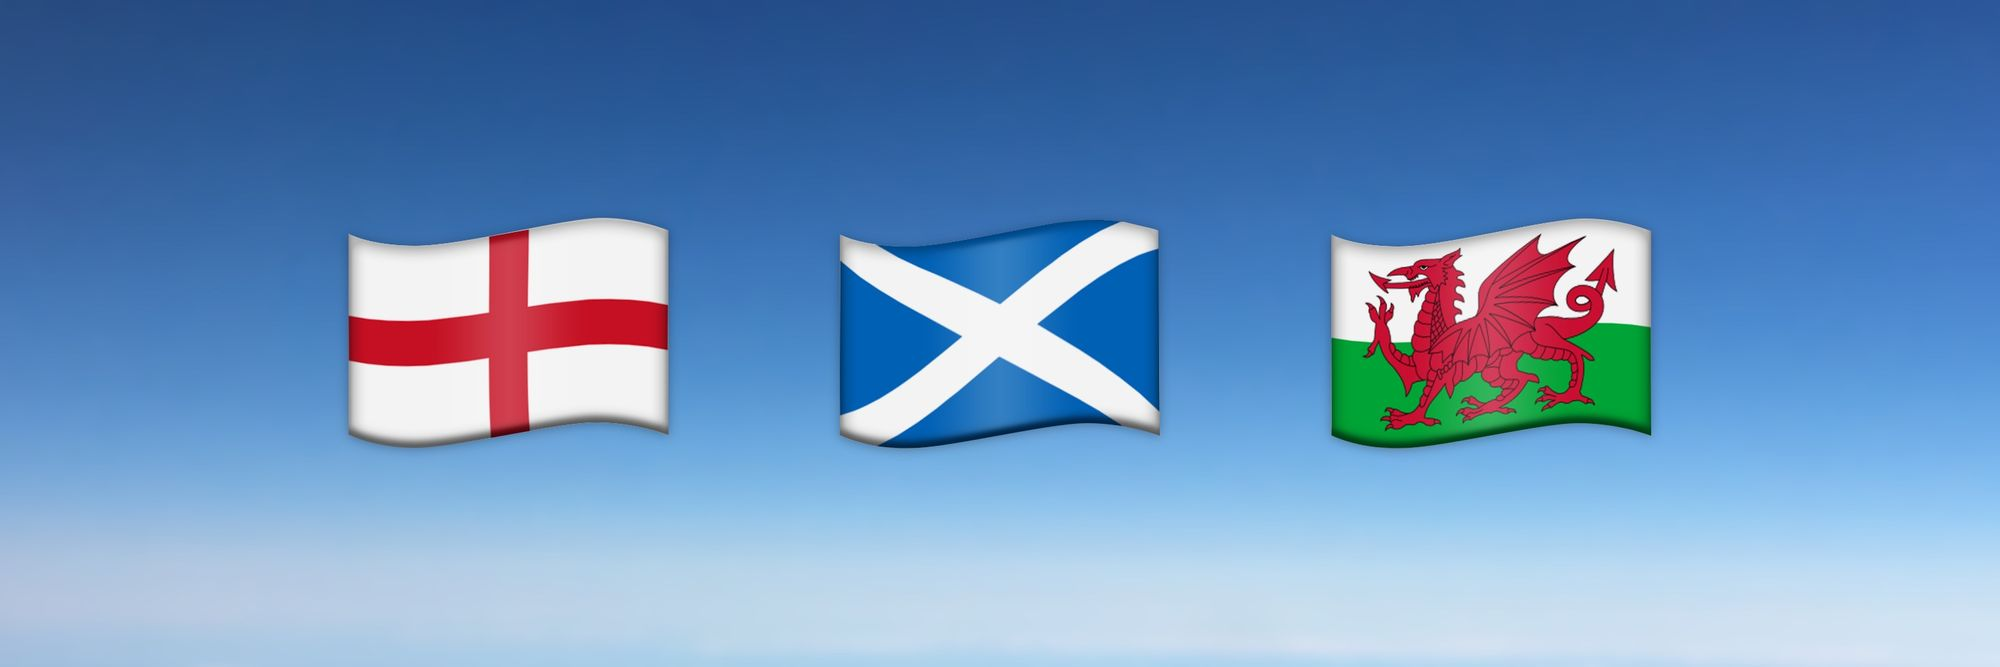 Emoji Flags for England, Scotland and Wales